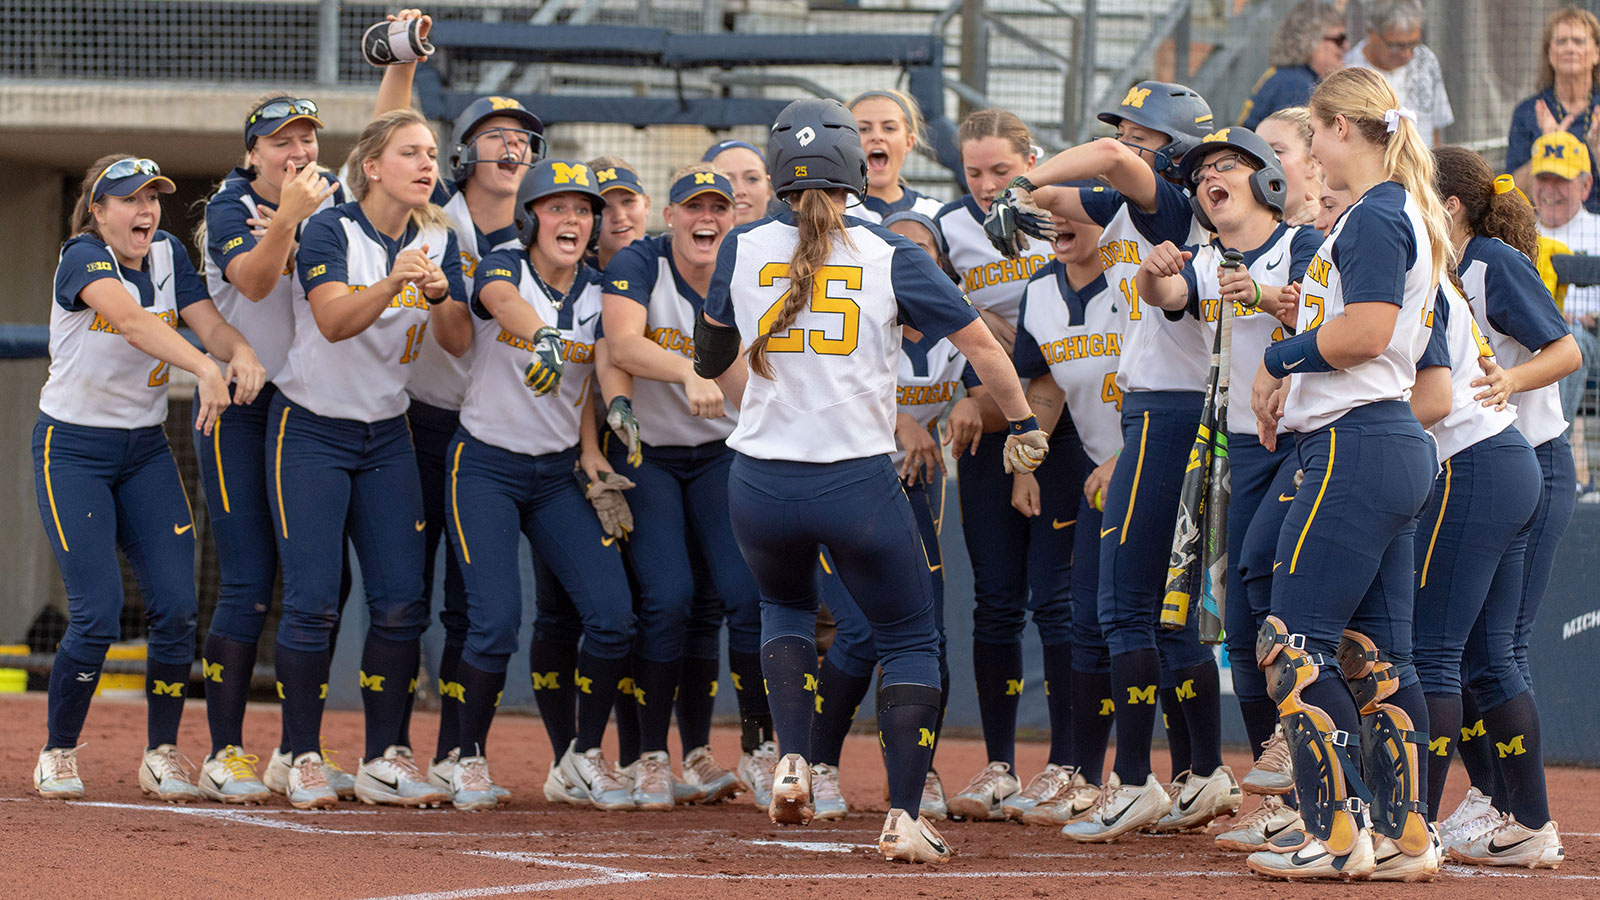 Michigan Softball Schedule 2019 Wolverines Announce 52 Game Schedule for 2019 Season   University